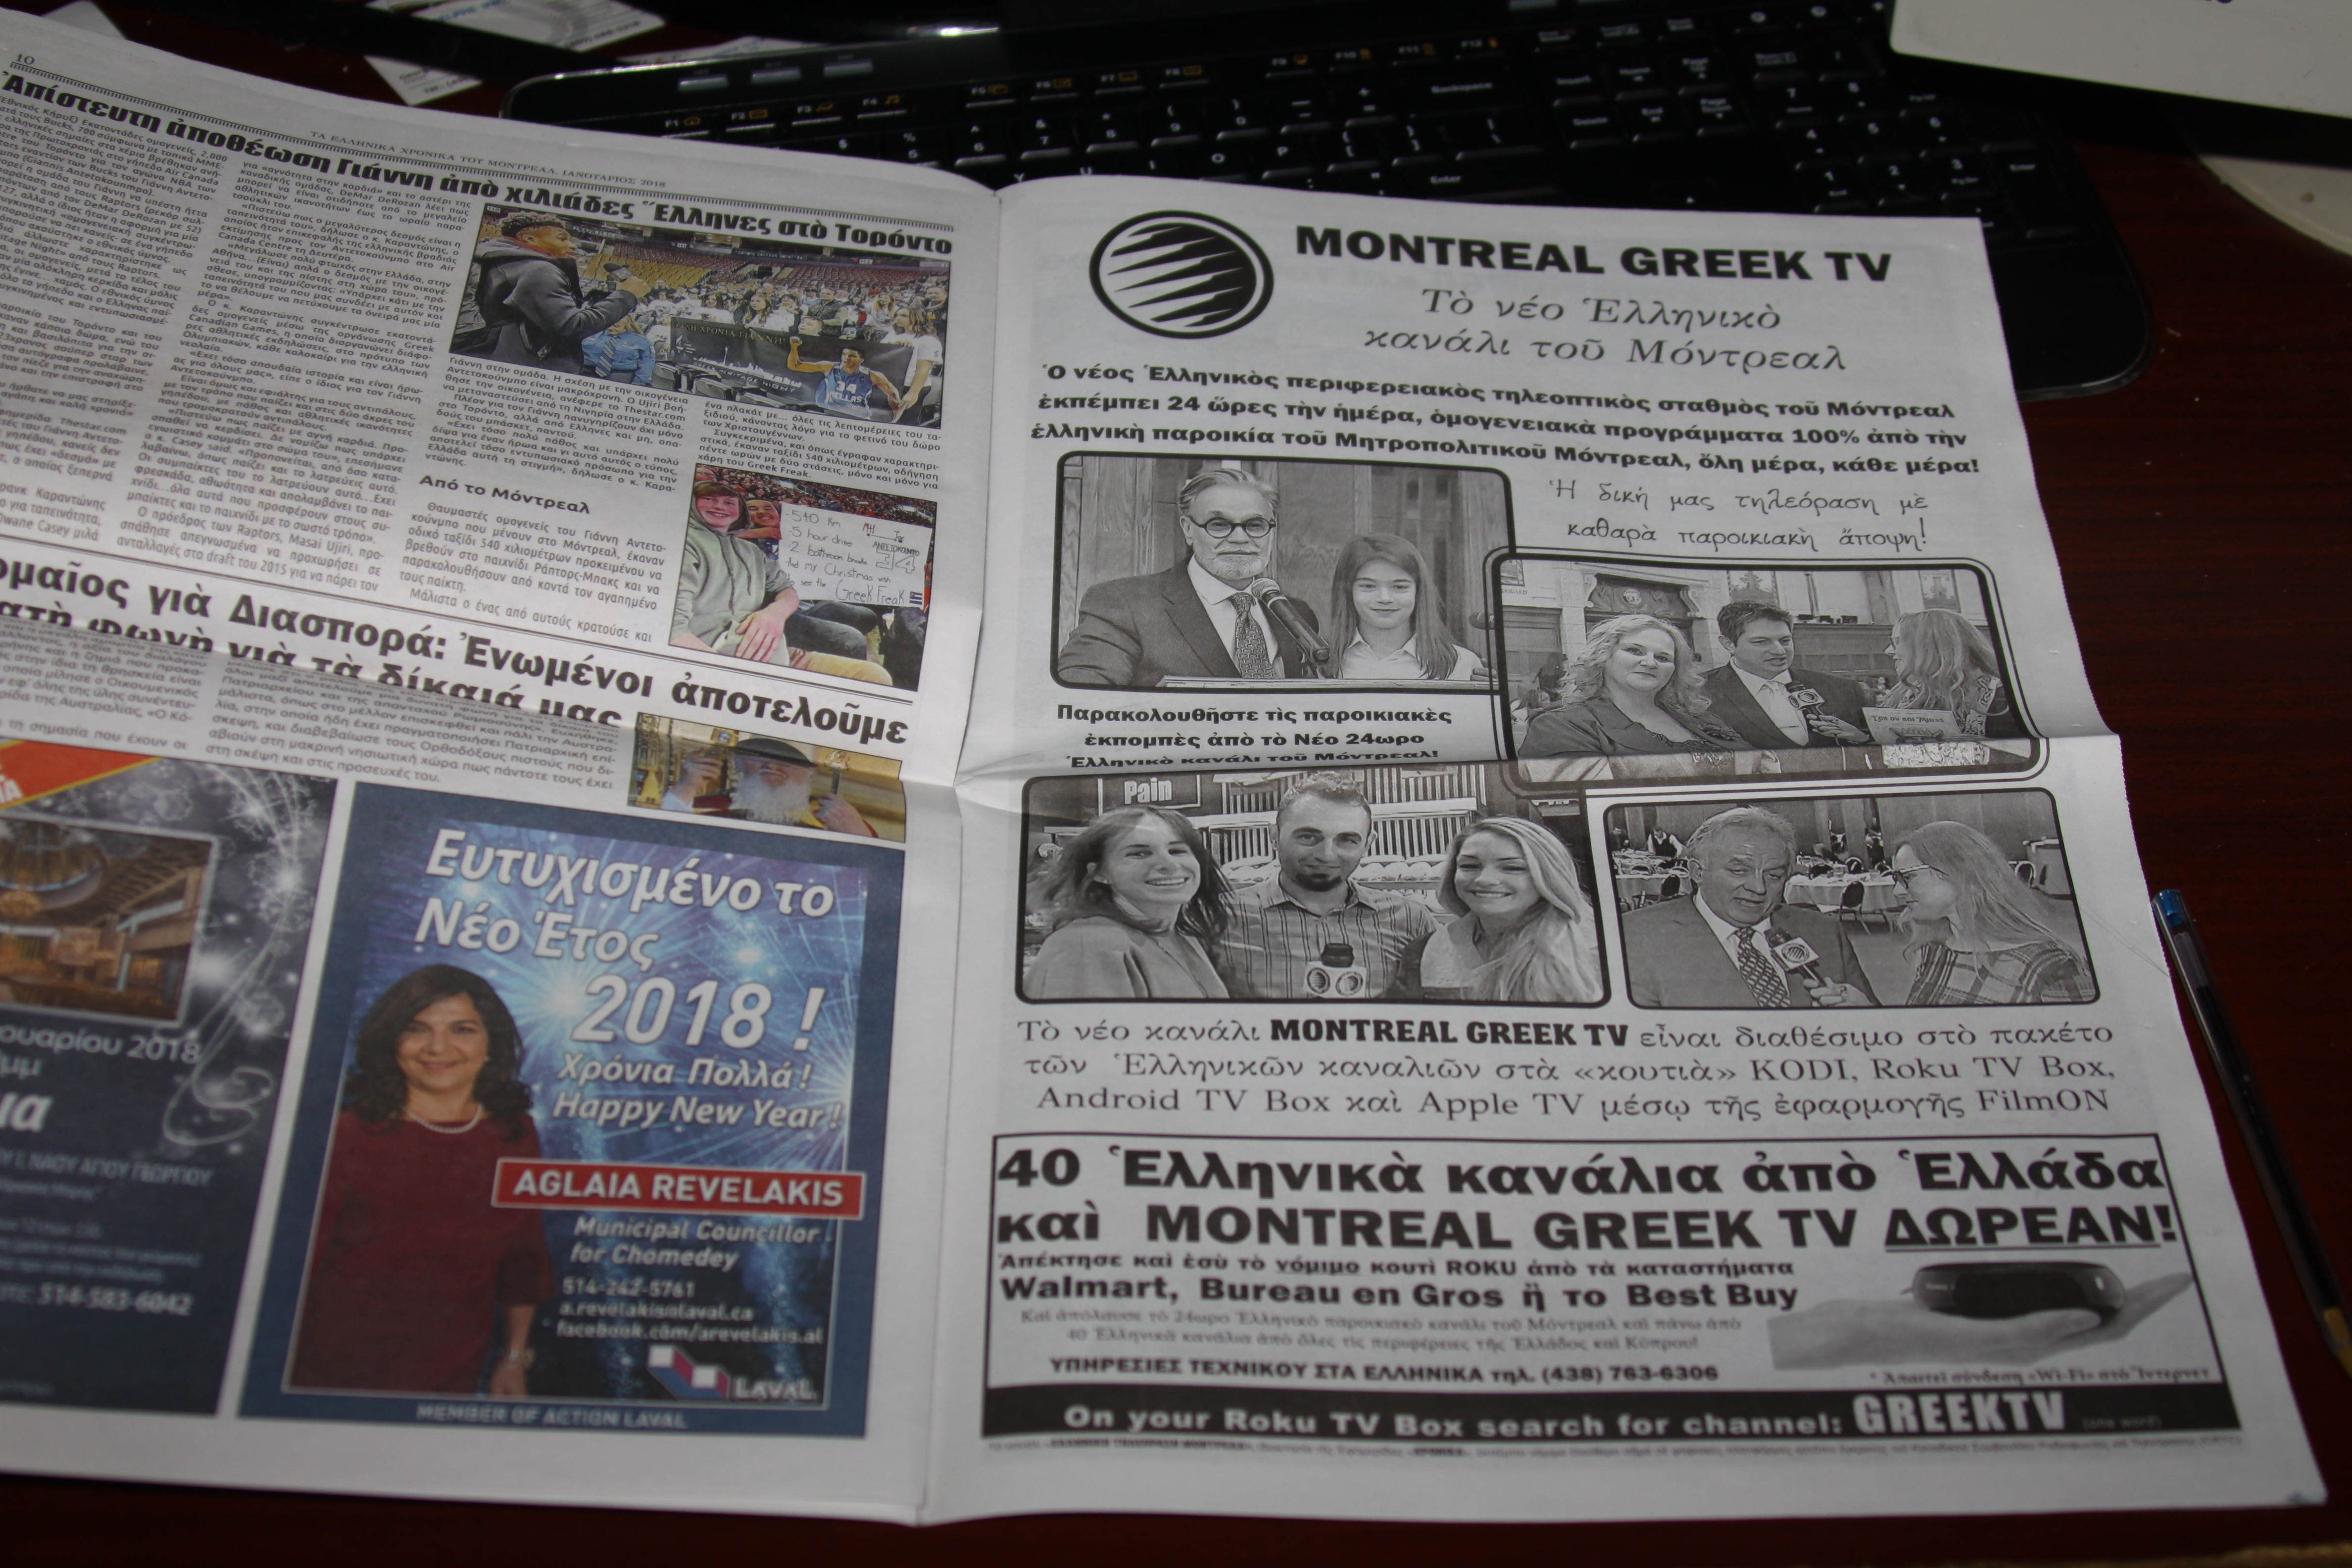 Montreal greek tv legal channel removed without explanations